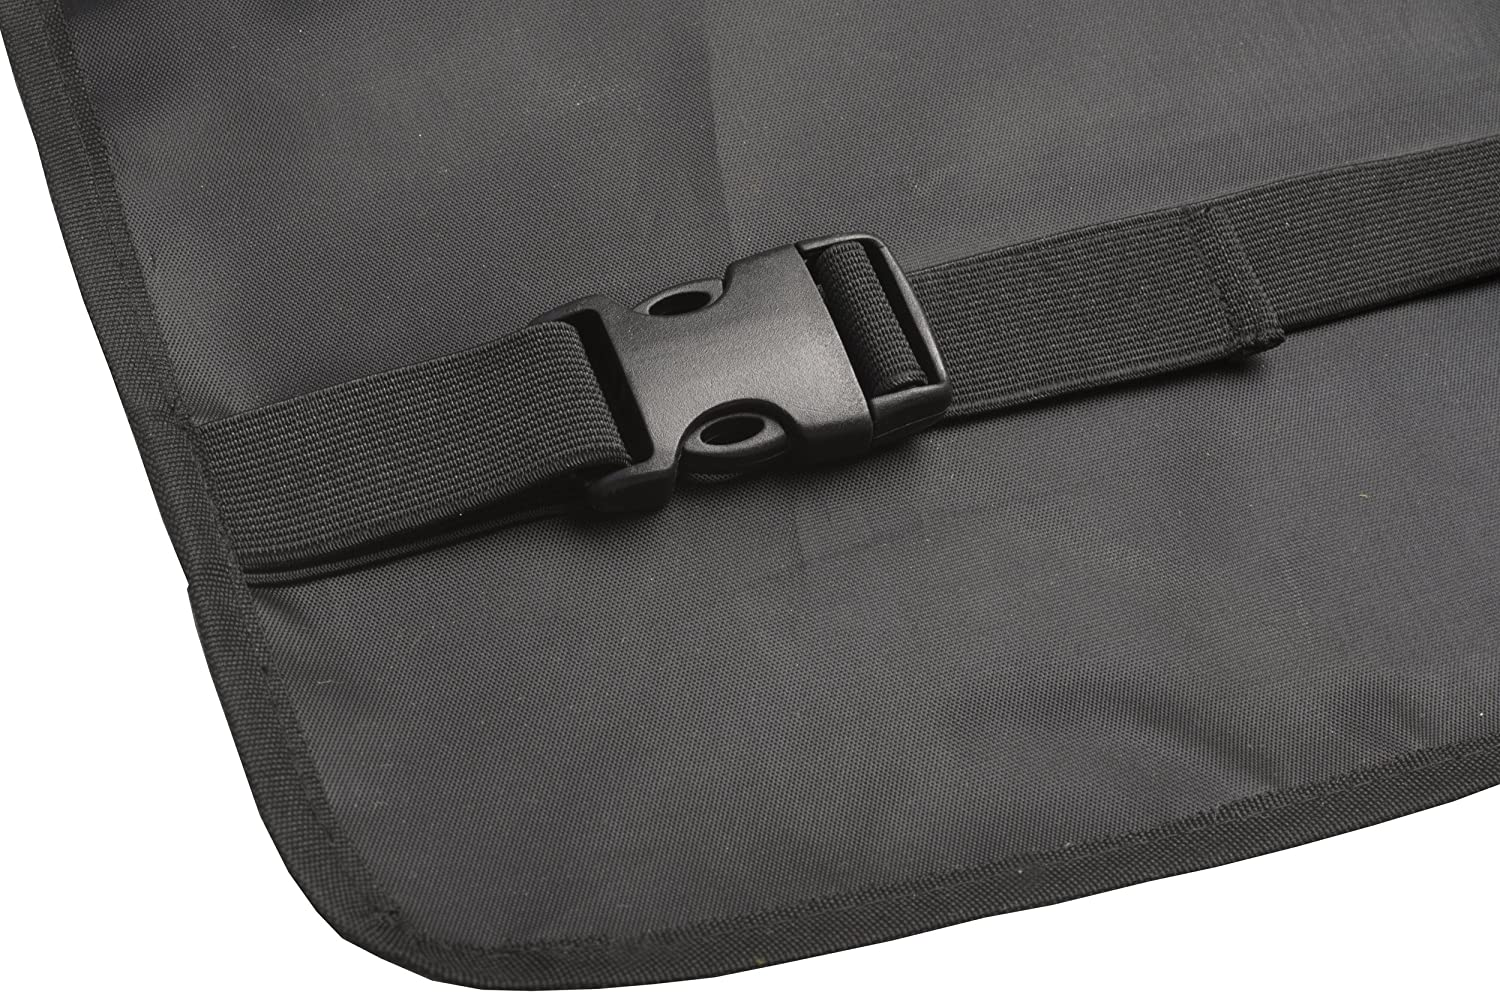 Plum Design Kick Mats Back of Car Seat Protector with Storage Pockets Pack of 2